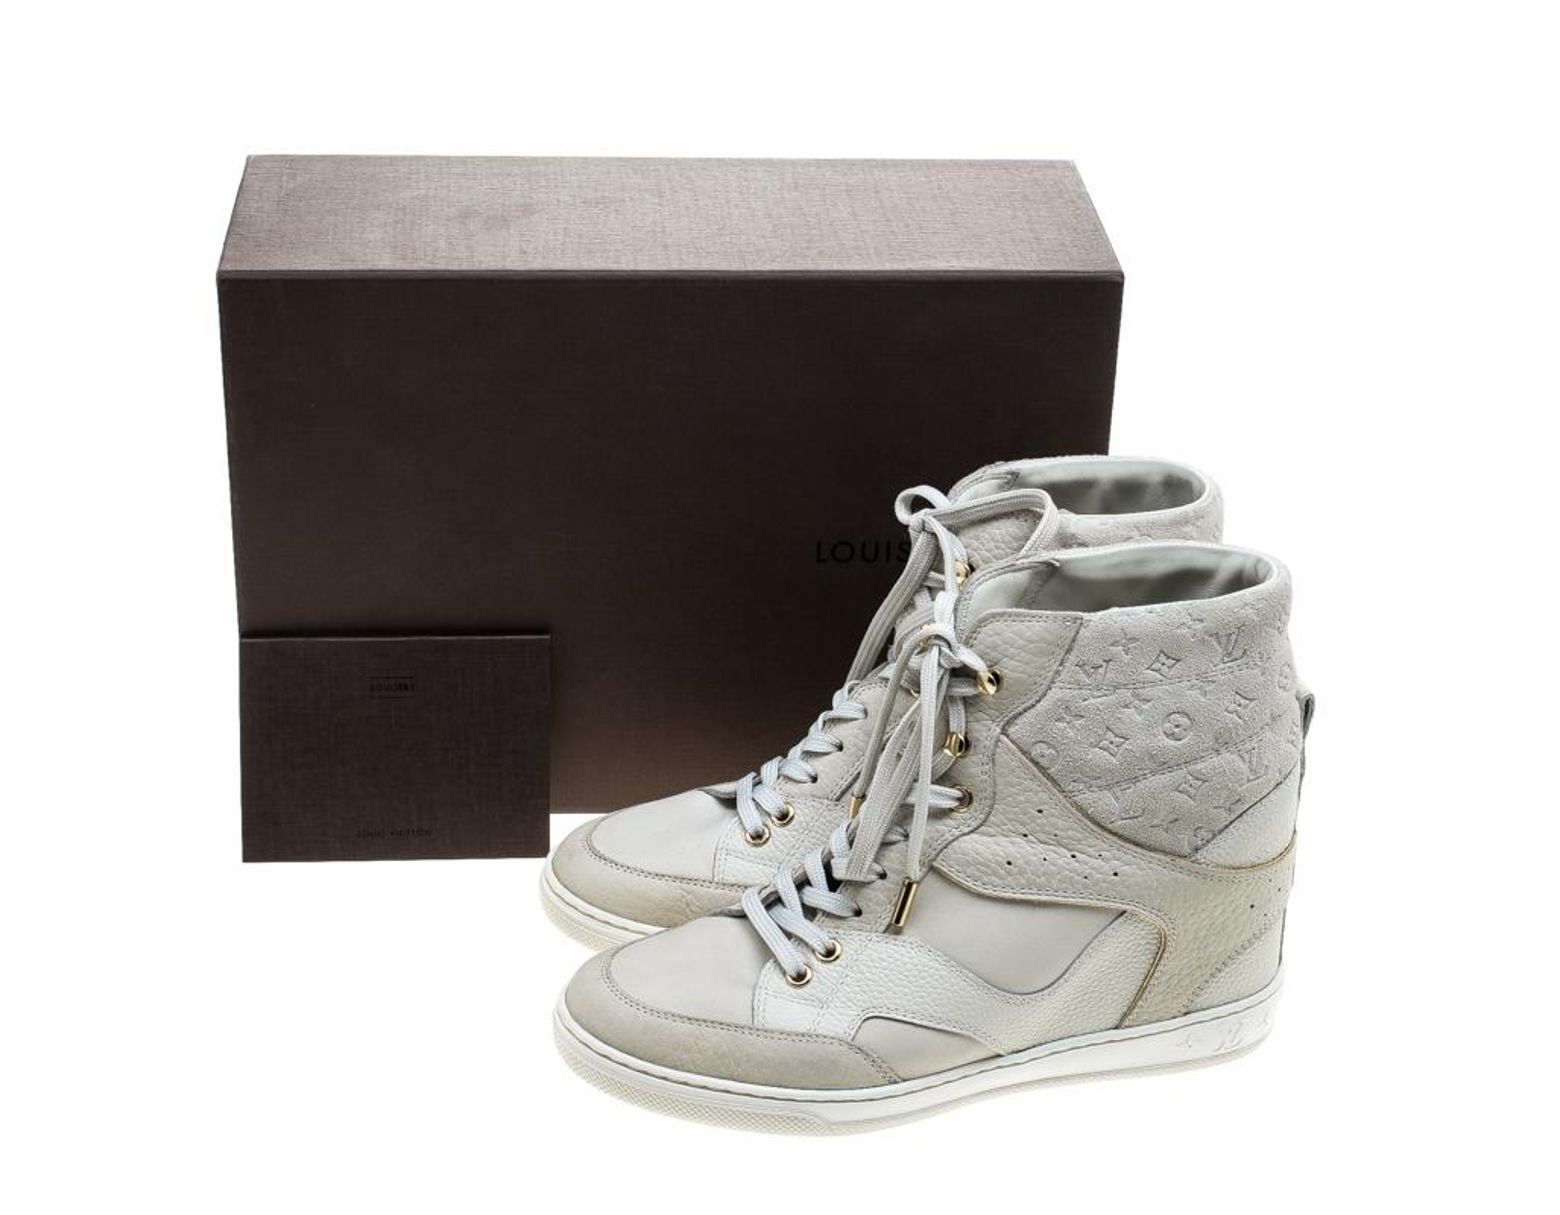 7a55f1ff80e Women's Off White Monogram Suede And Leather Cliff Top Sneakers Size 37